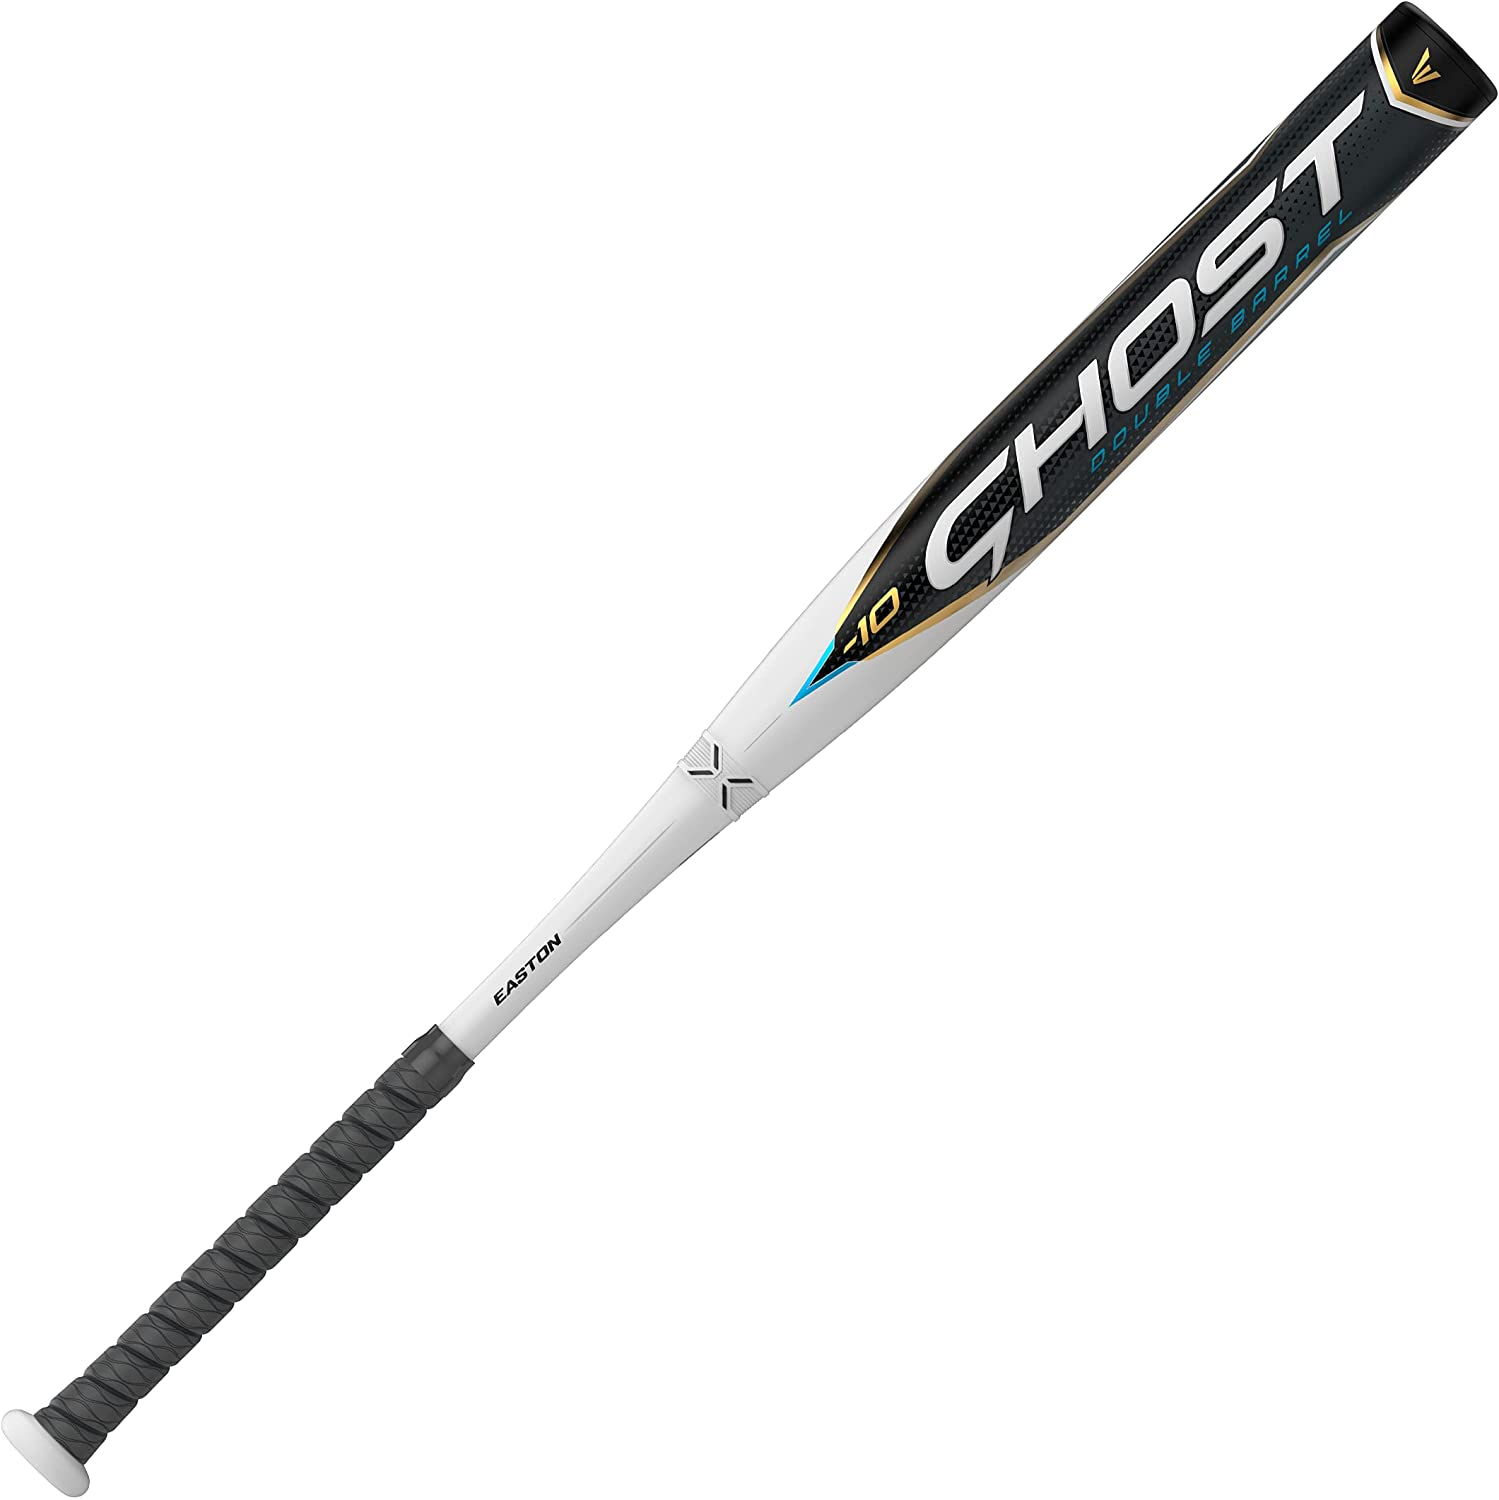 easton-2022-ghost-double-barrel-fastpitch-softball-bat-33-inch-23-oz FP22GH10-3323   <ul class=a-unordered-list a-vertical a-spacing-mini> <li><span class=a-list-item>PATENTED DOUBLE BARREL CONSTRUCTION provides the